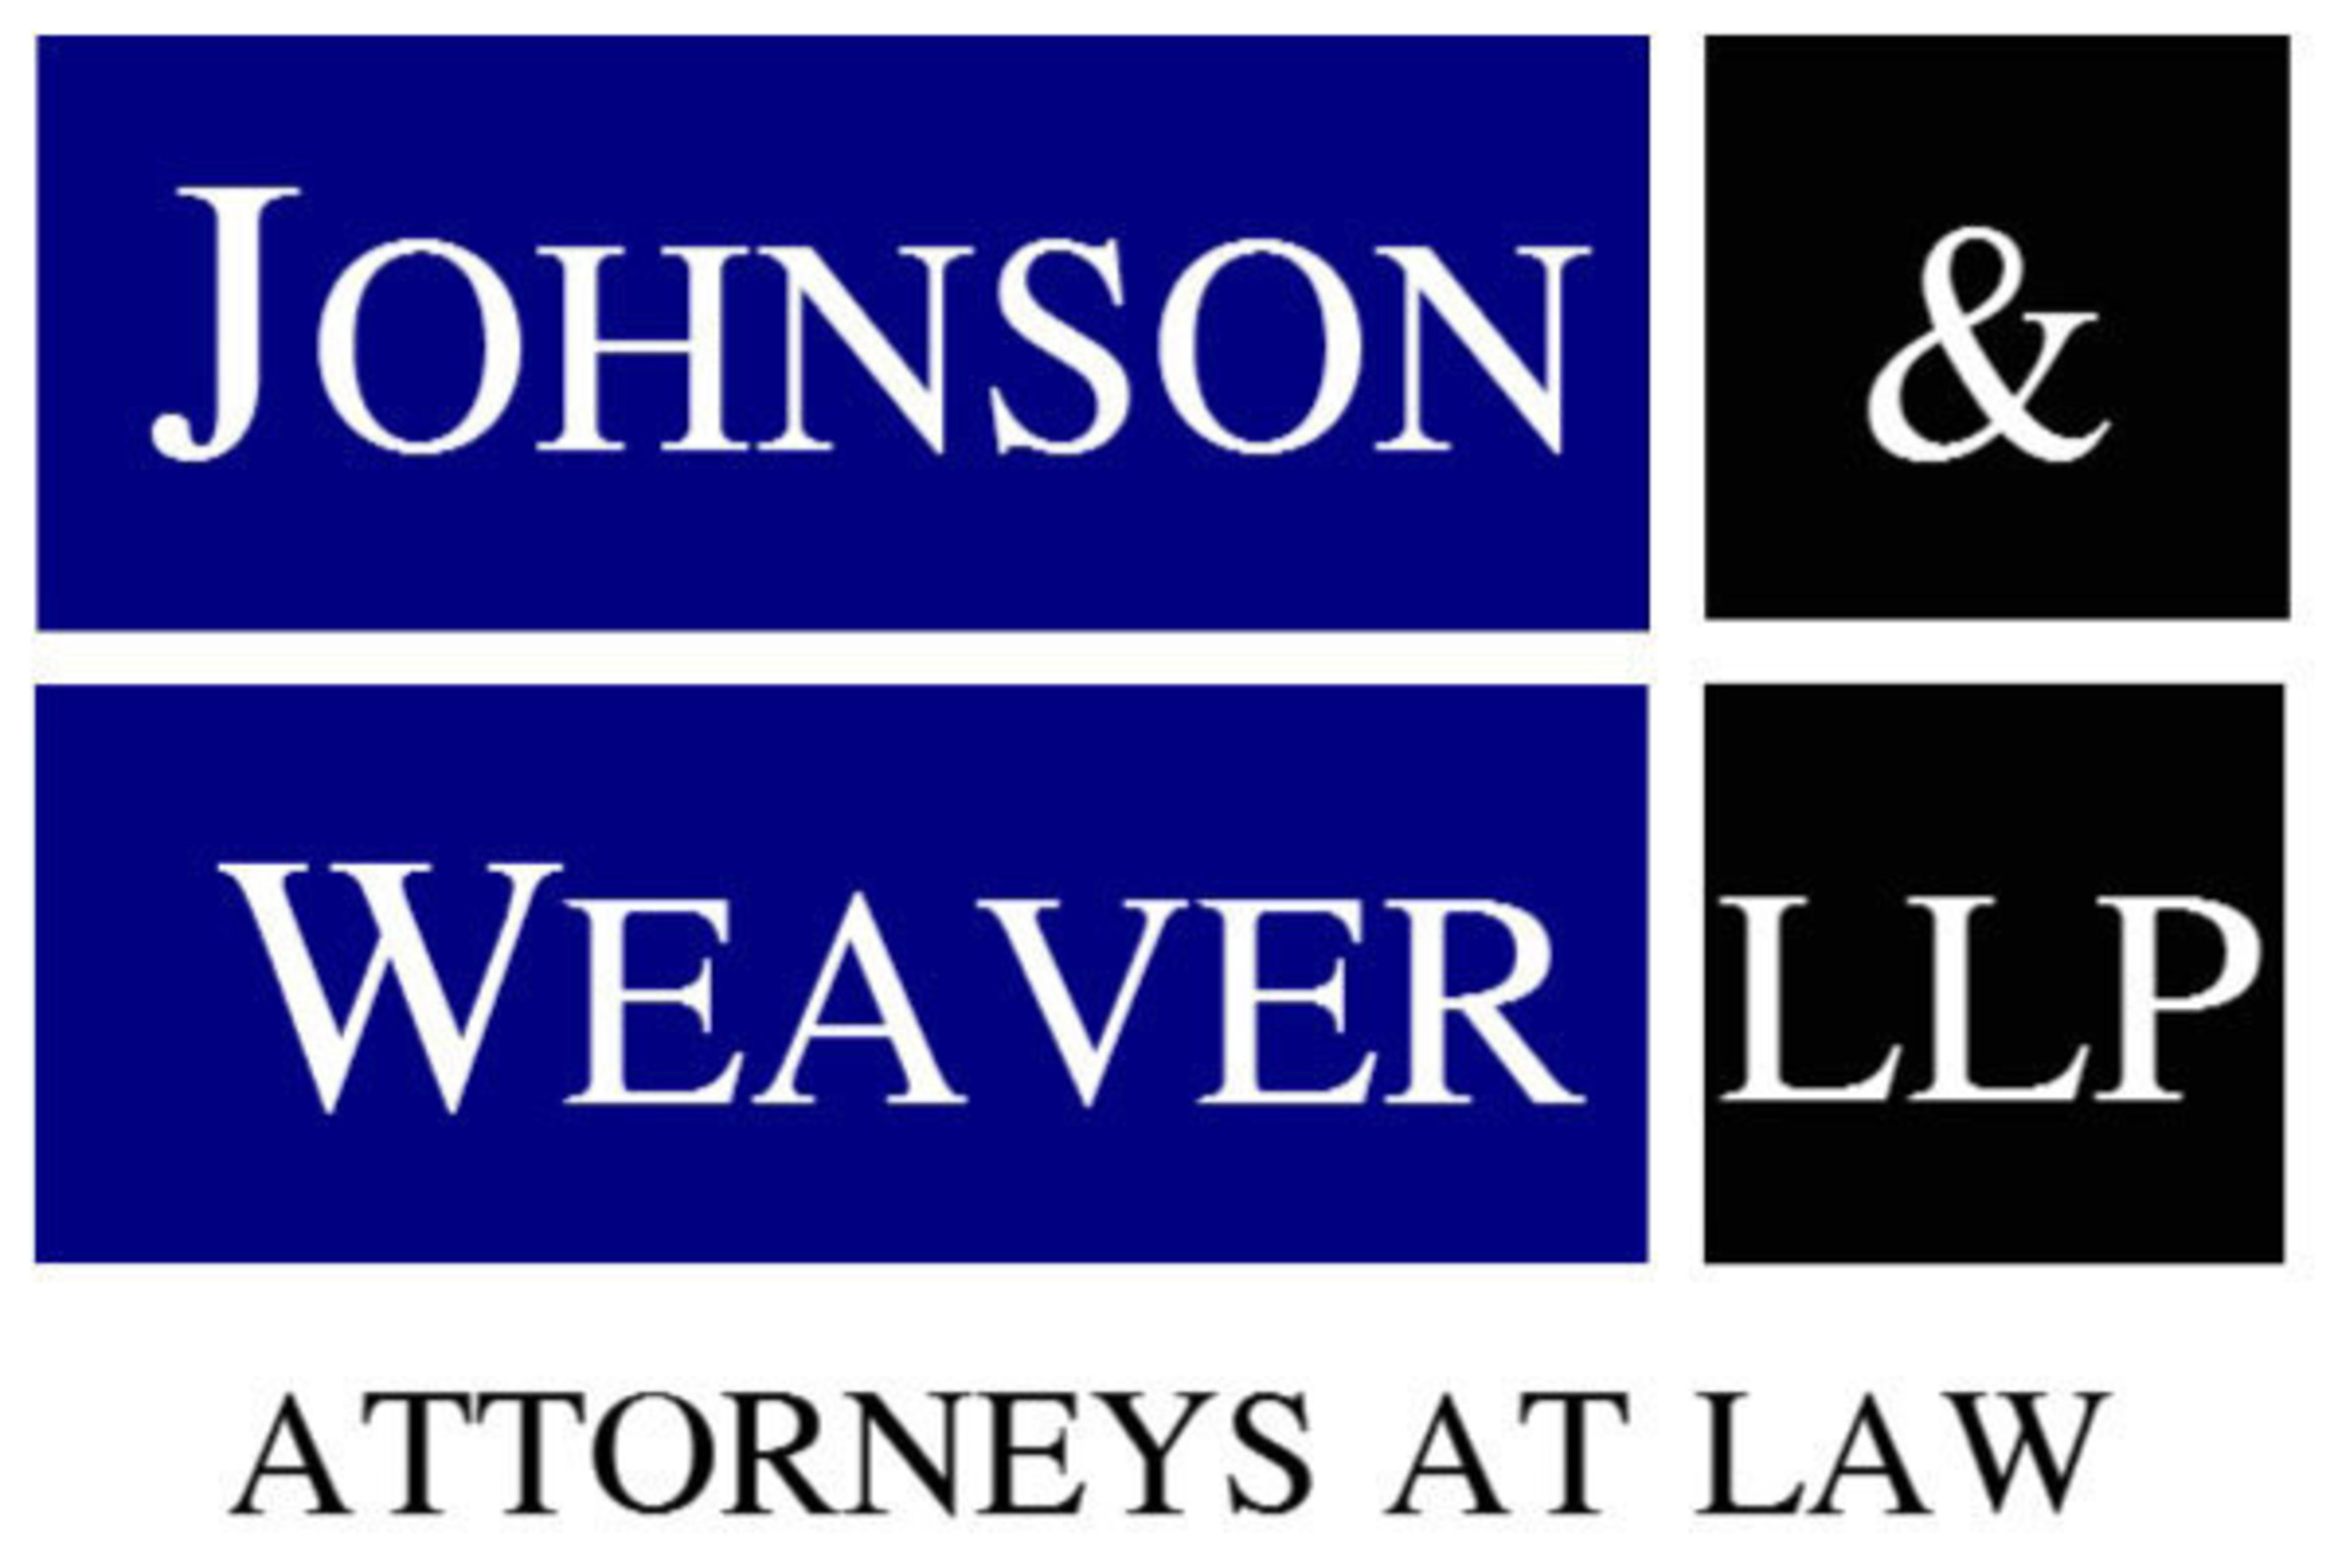 Johnson & Weaver LLP